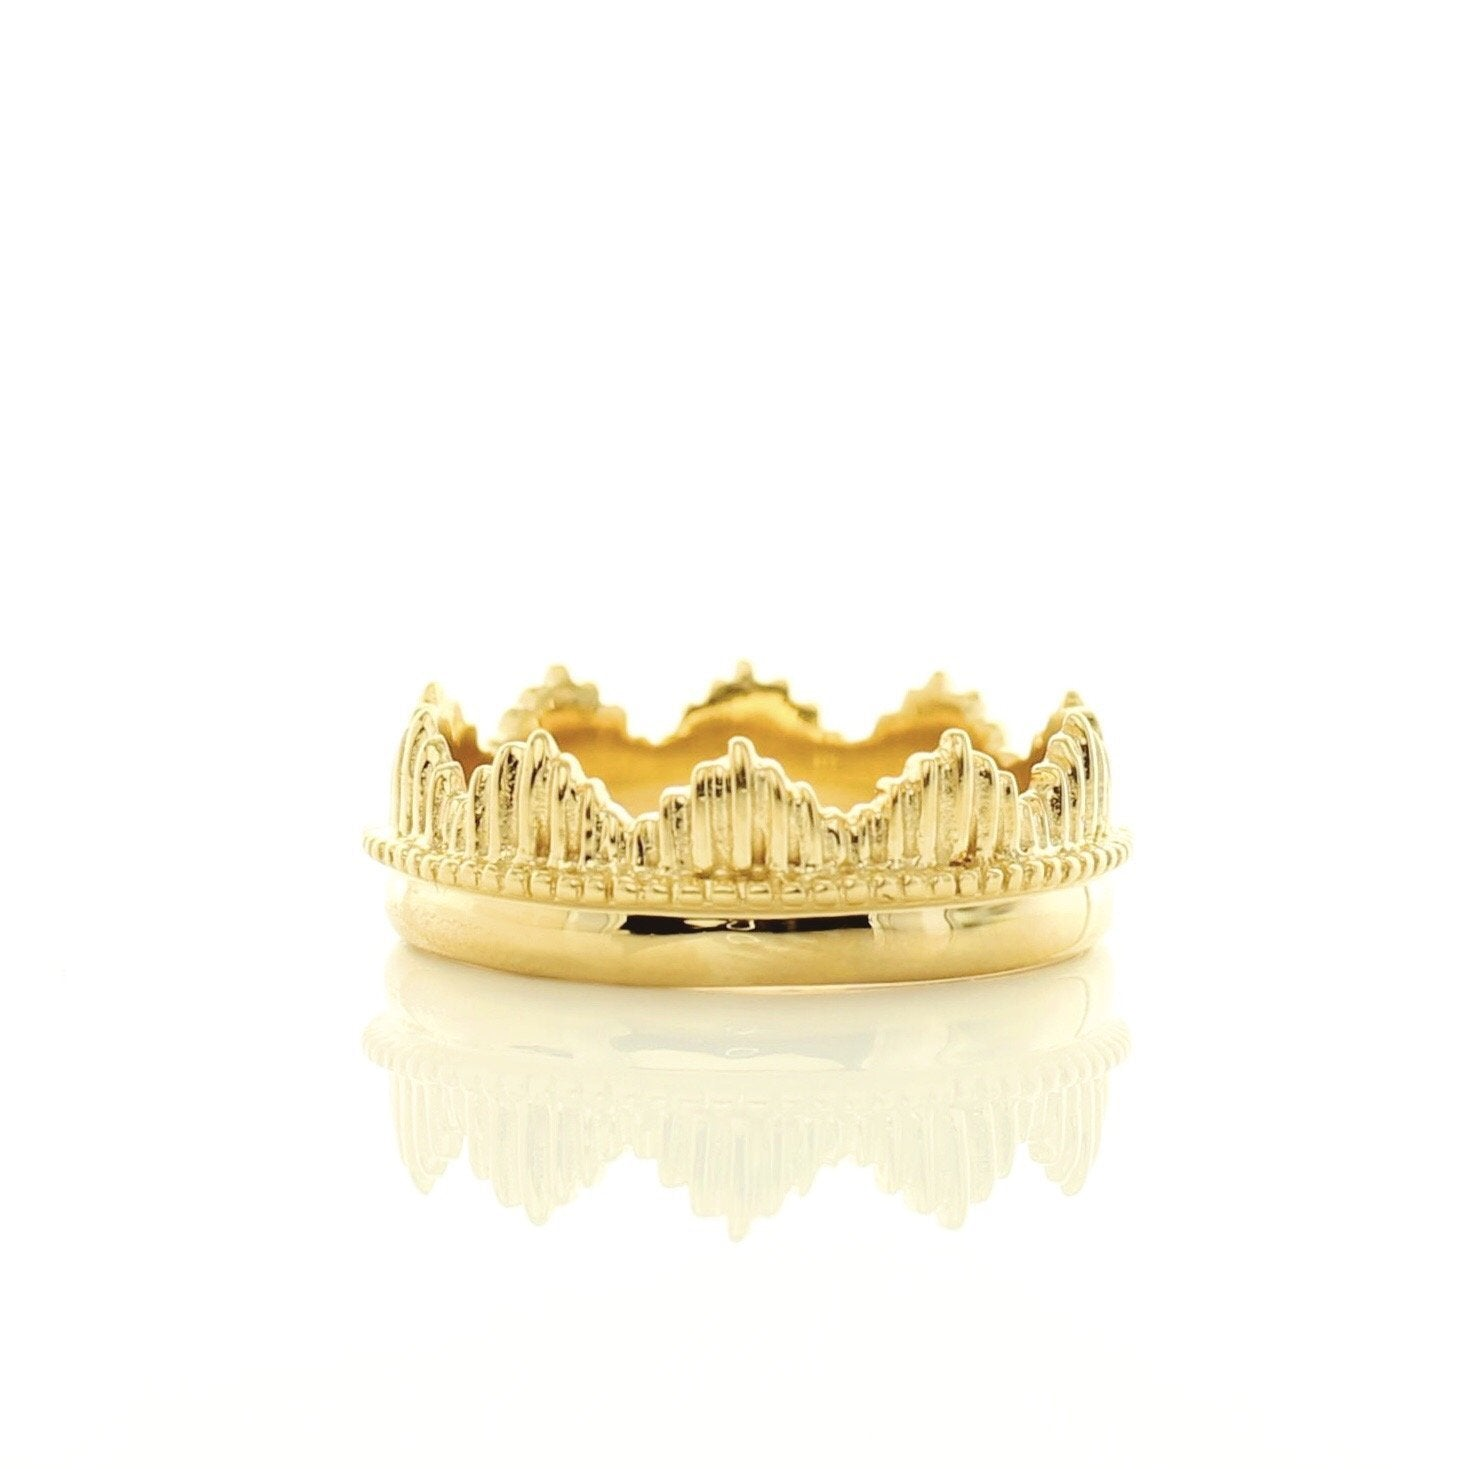 BELIEVE SOLEIL CROWN RING - GOLD - SO PRETTY CARA COTTER